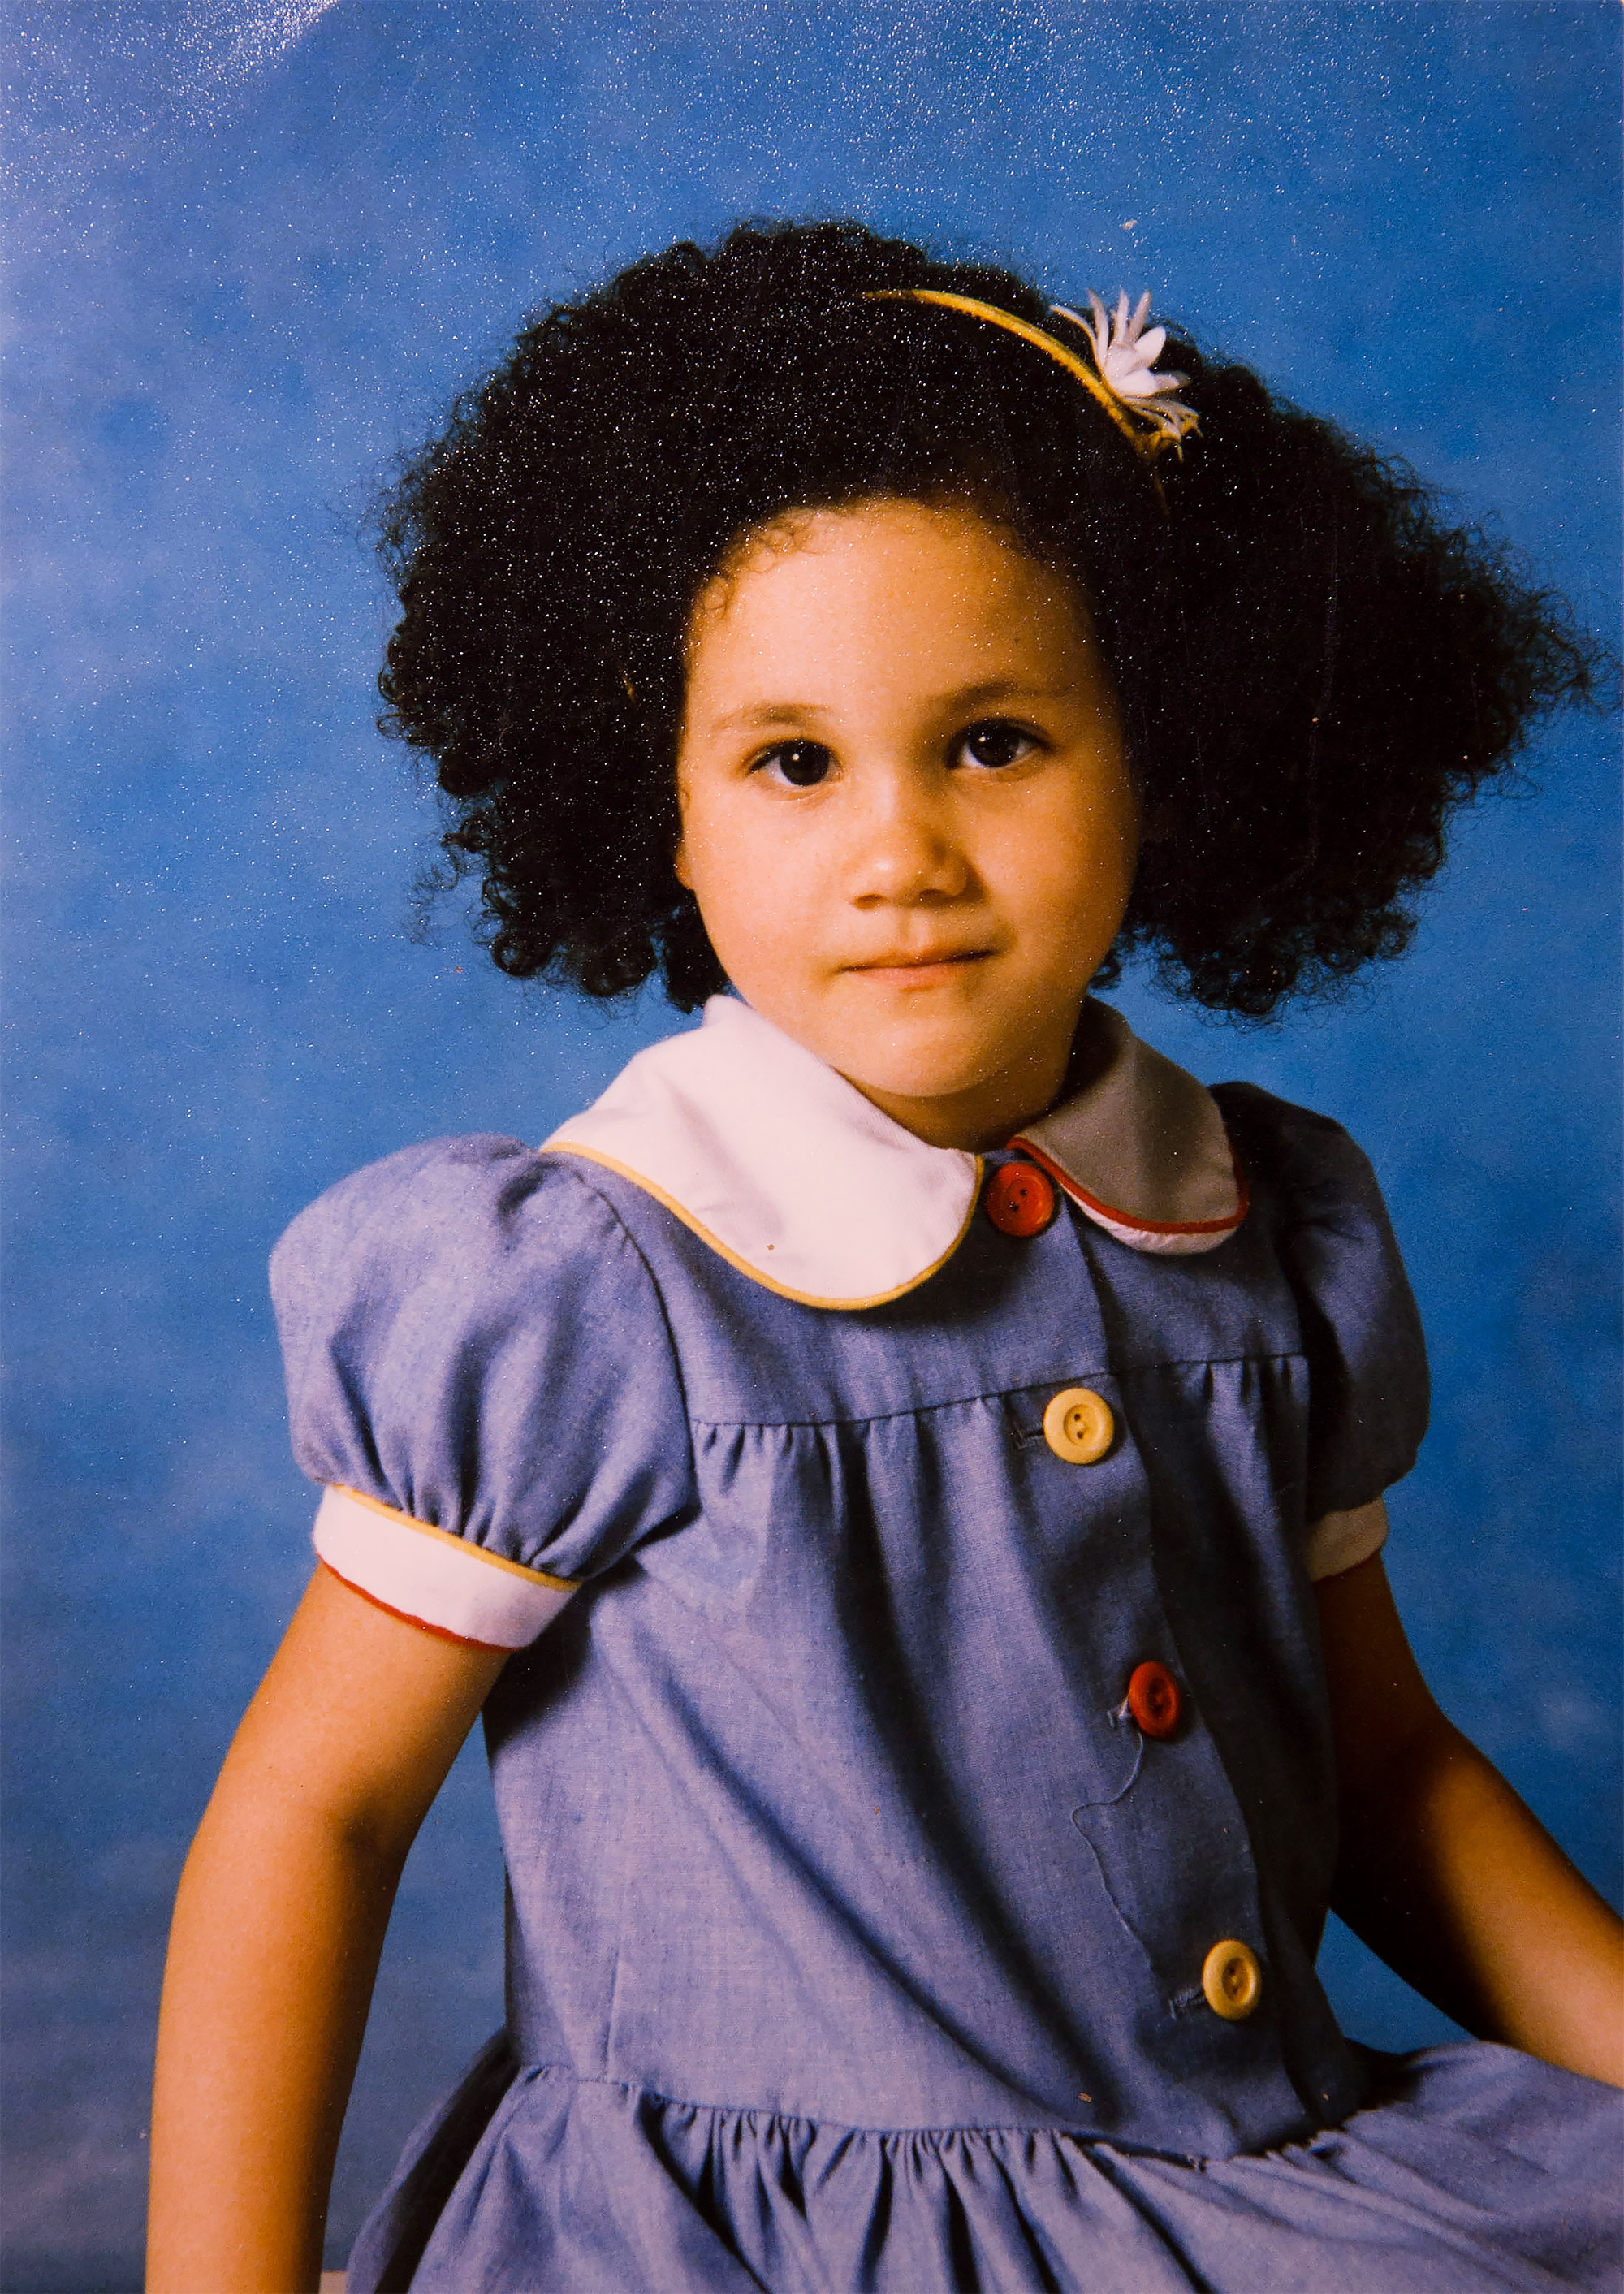 30 photos the royal family don t want you to see of meghan markle eighties kids